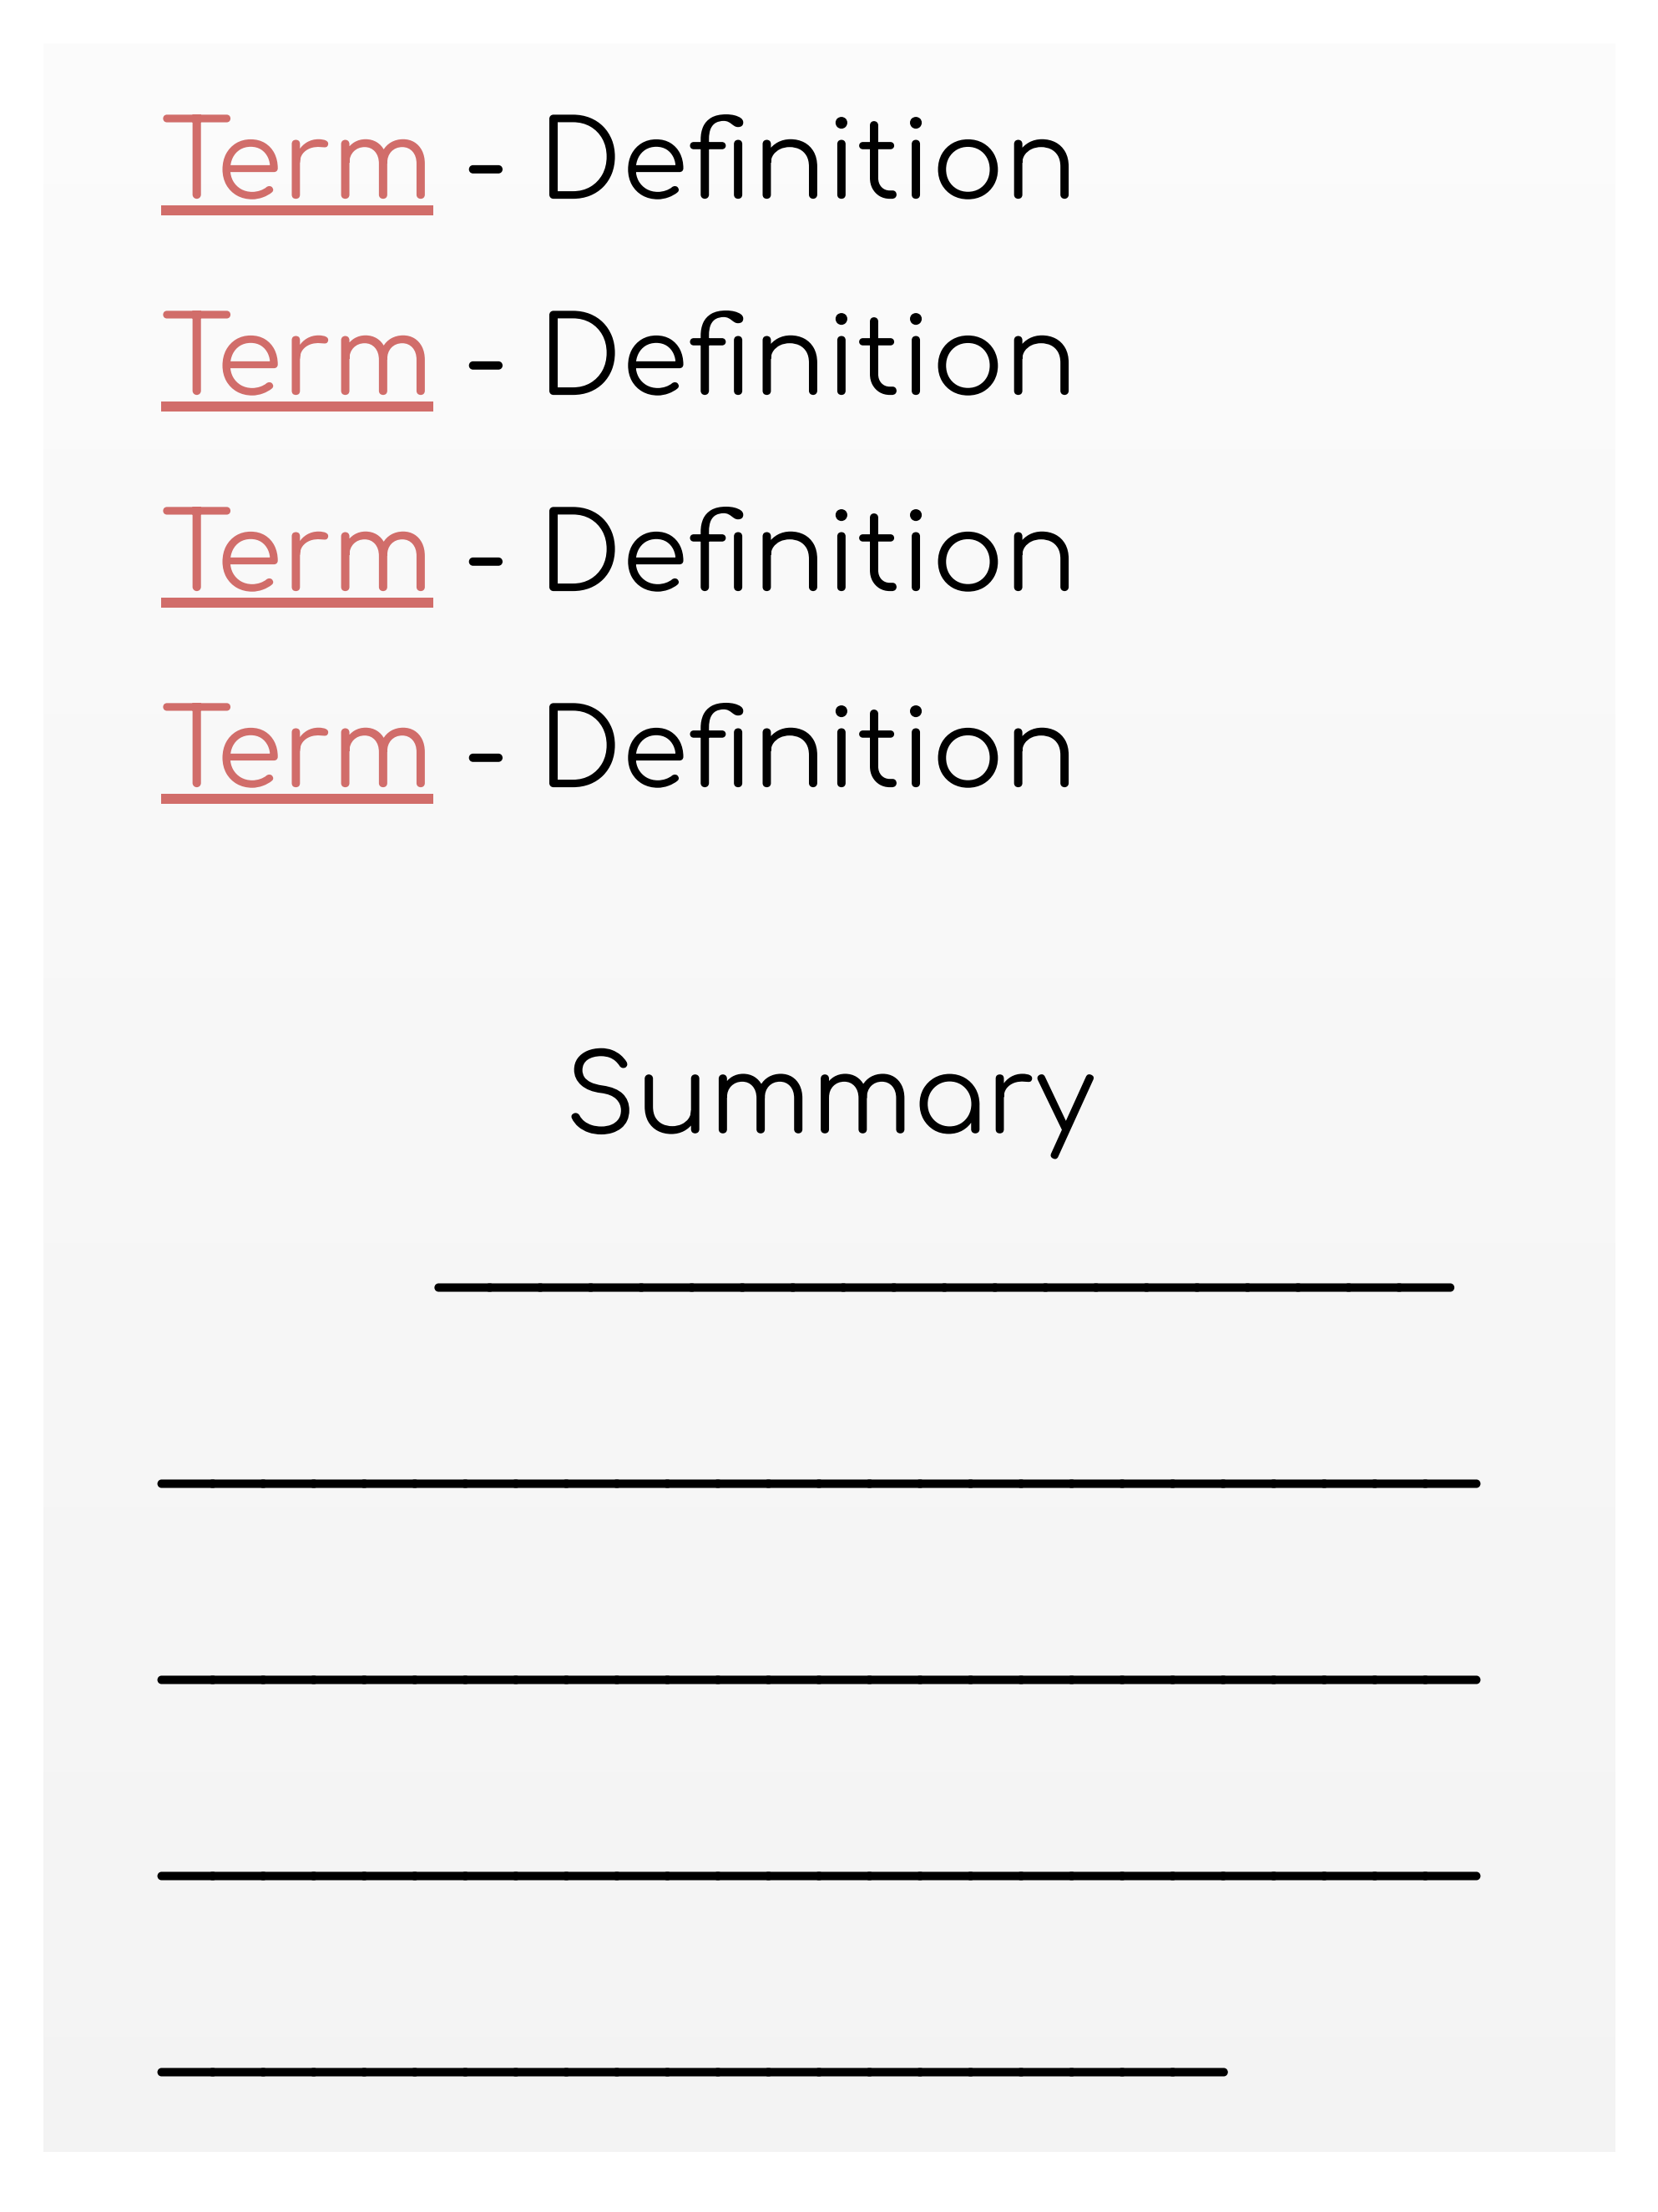 Abstract representation of definitions and summary